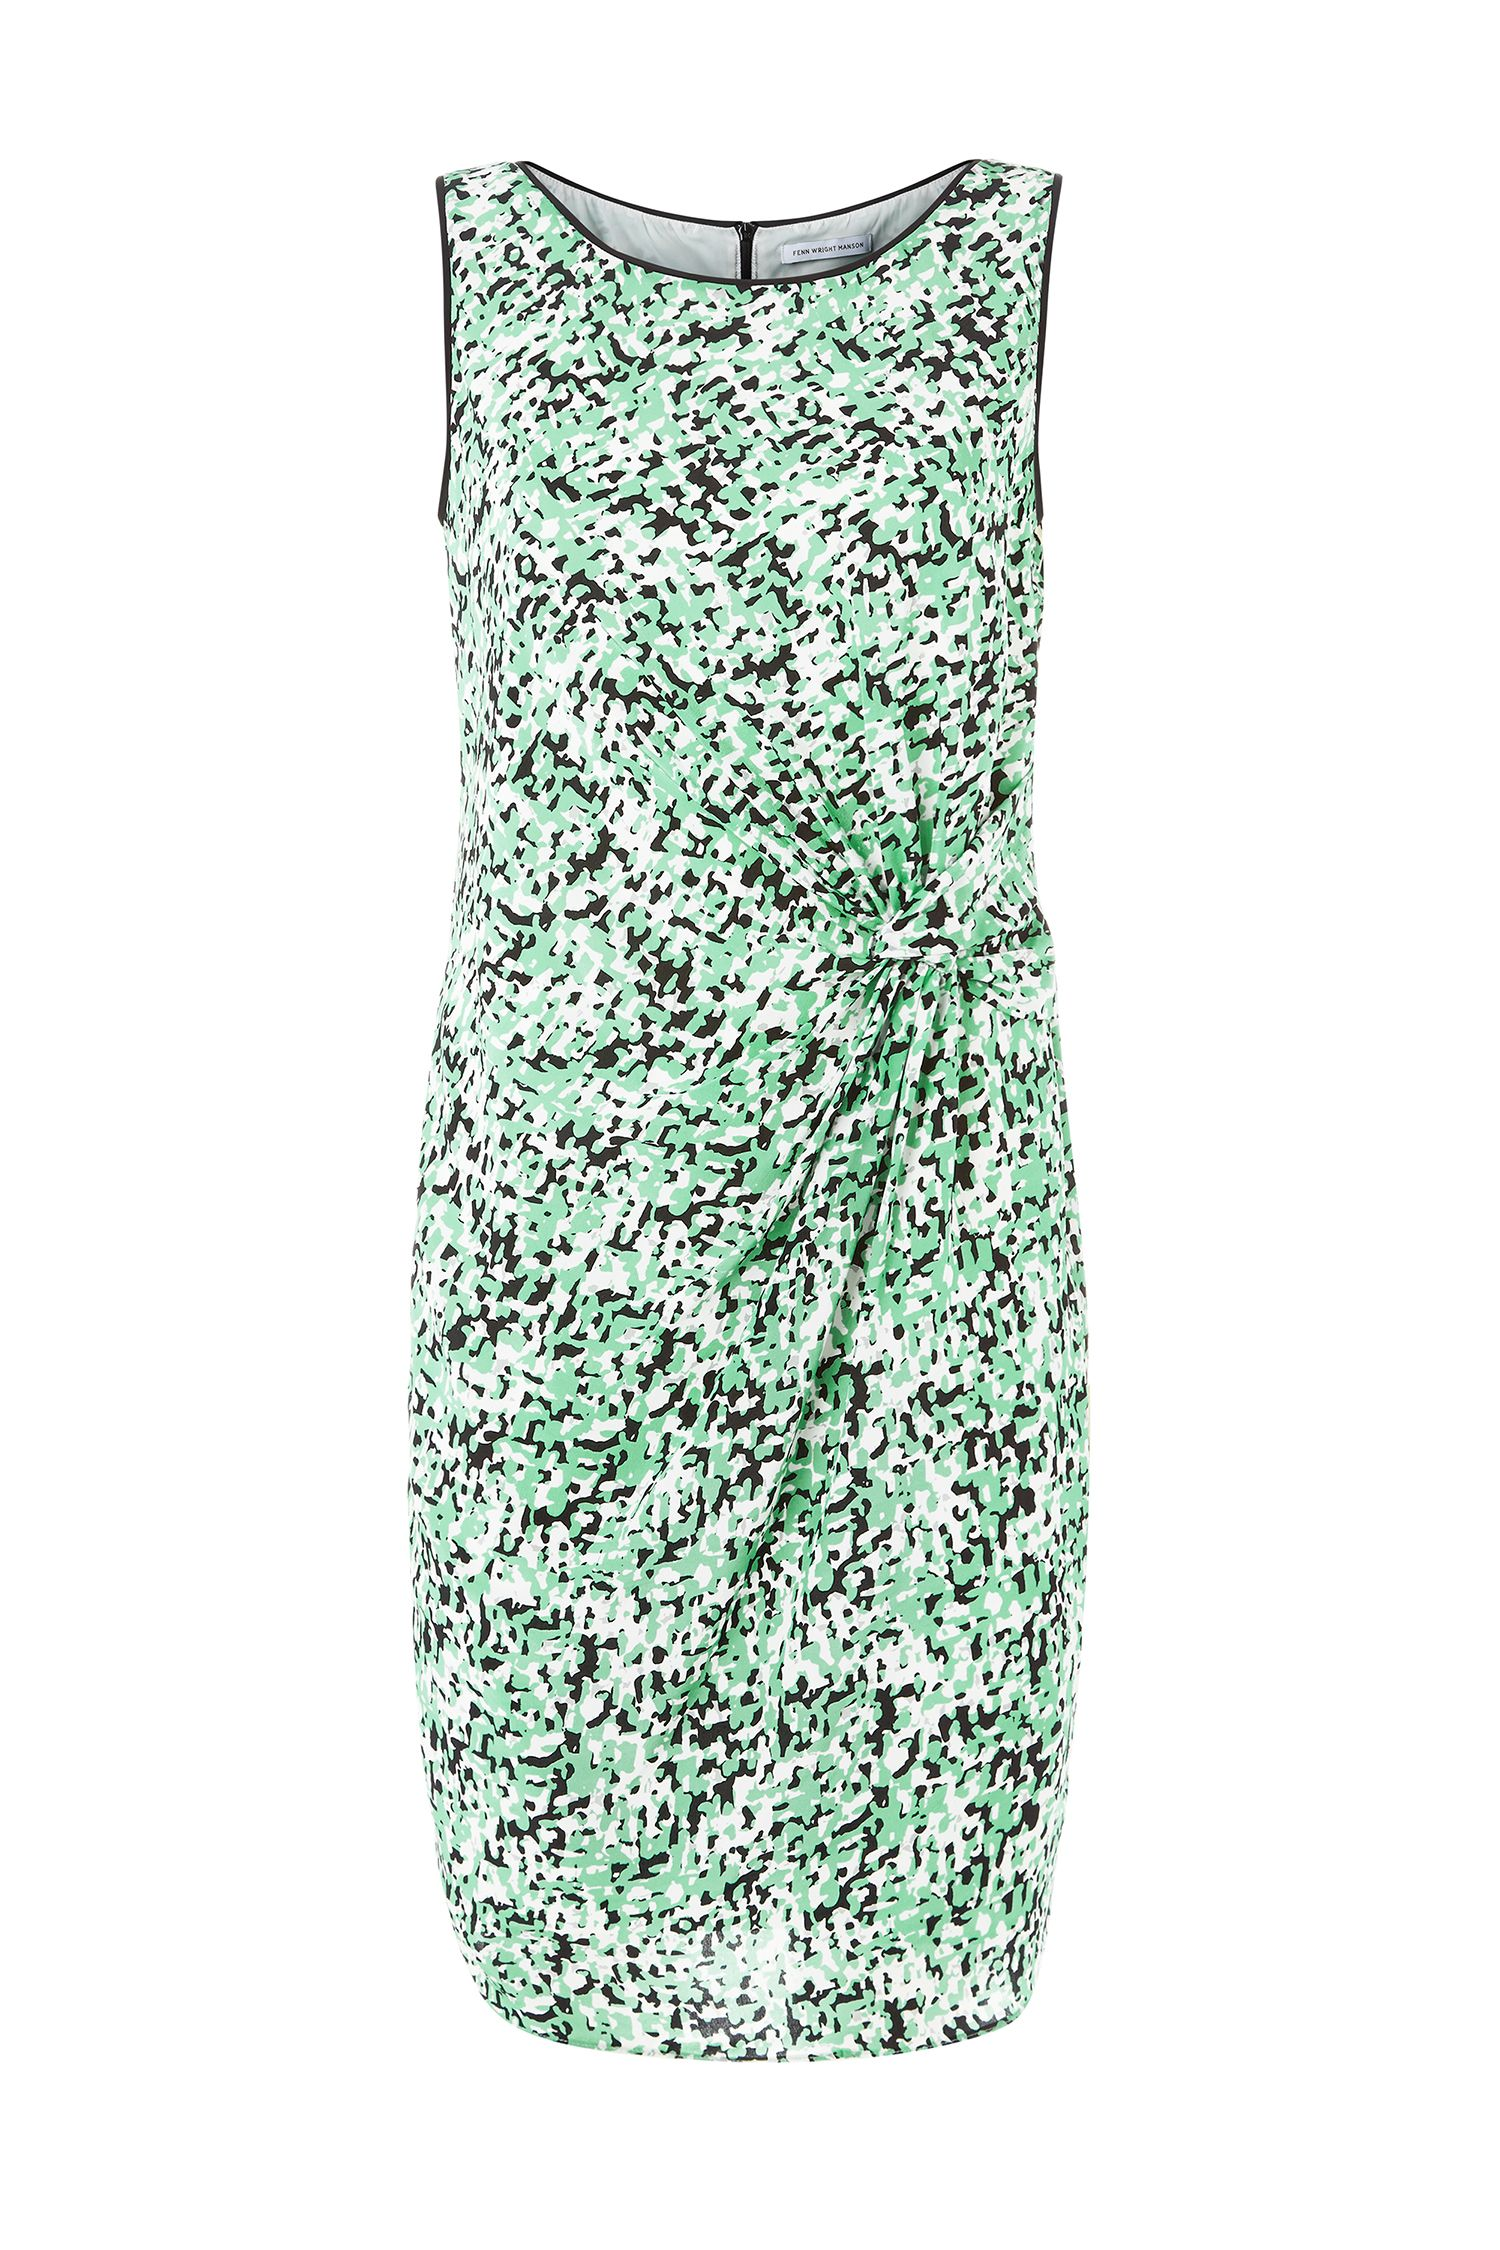 Fenn Wright Manson Hosta Dress, Green